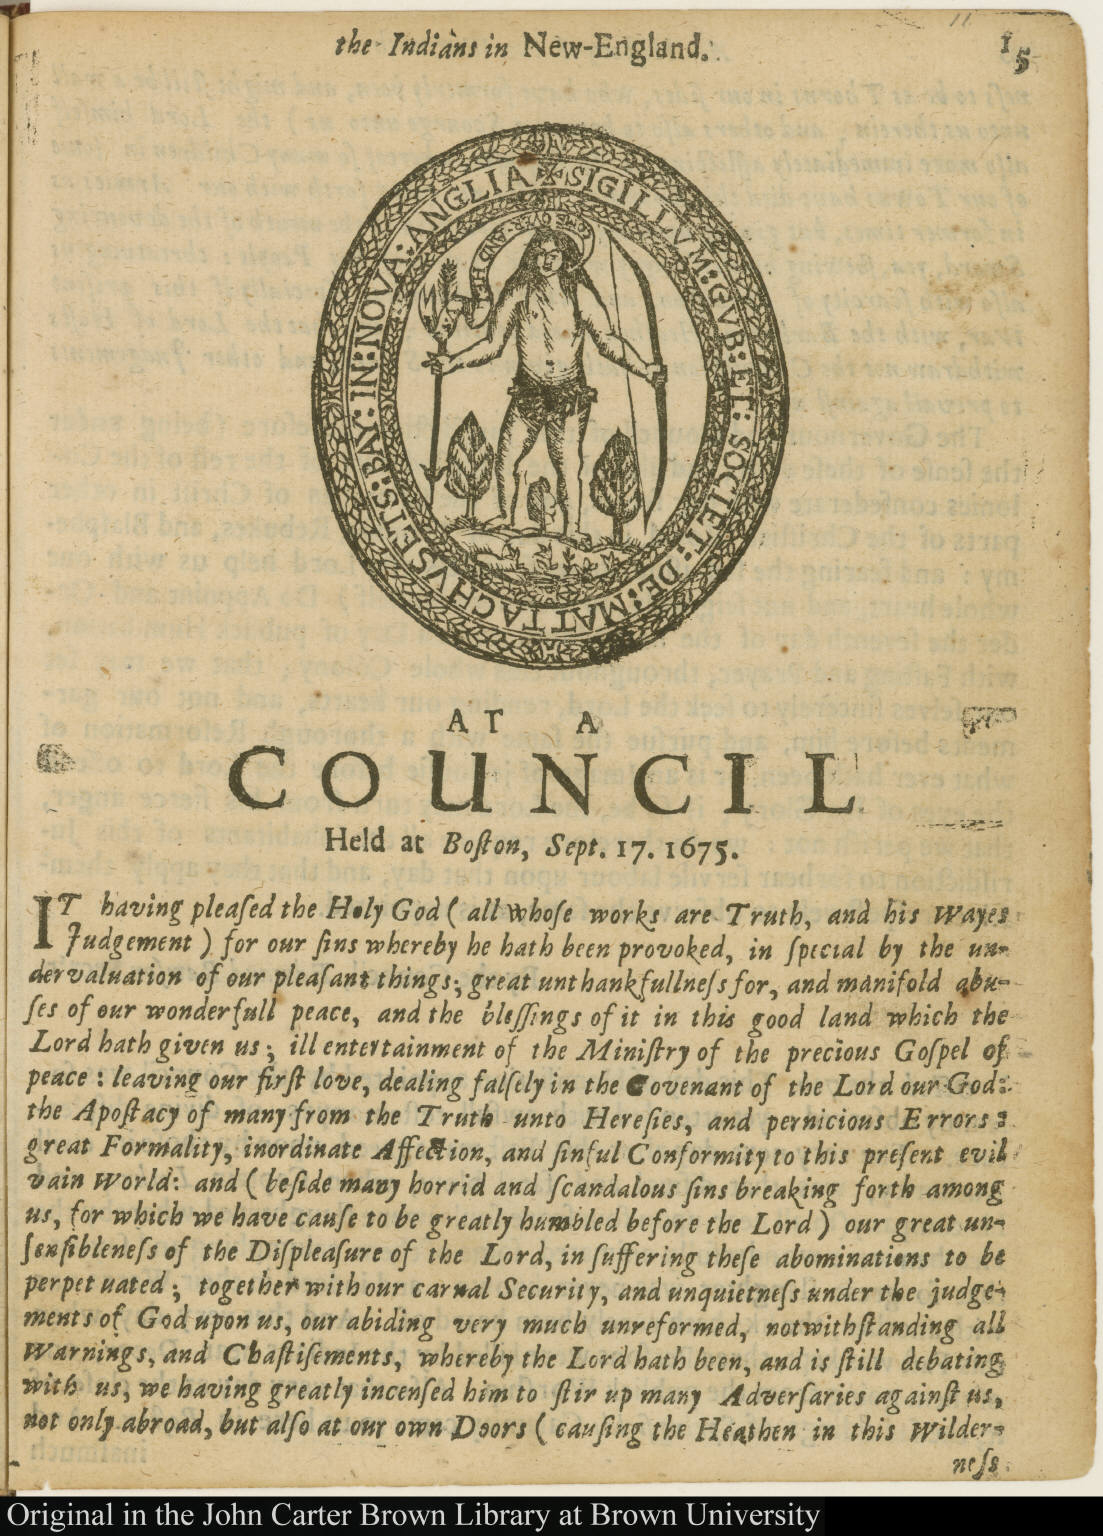 Early seal of the Massachusetts Bay Colony from 1629-1684.